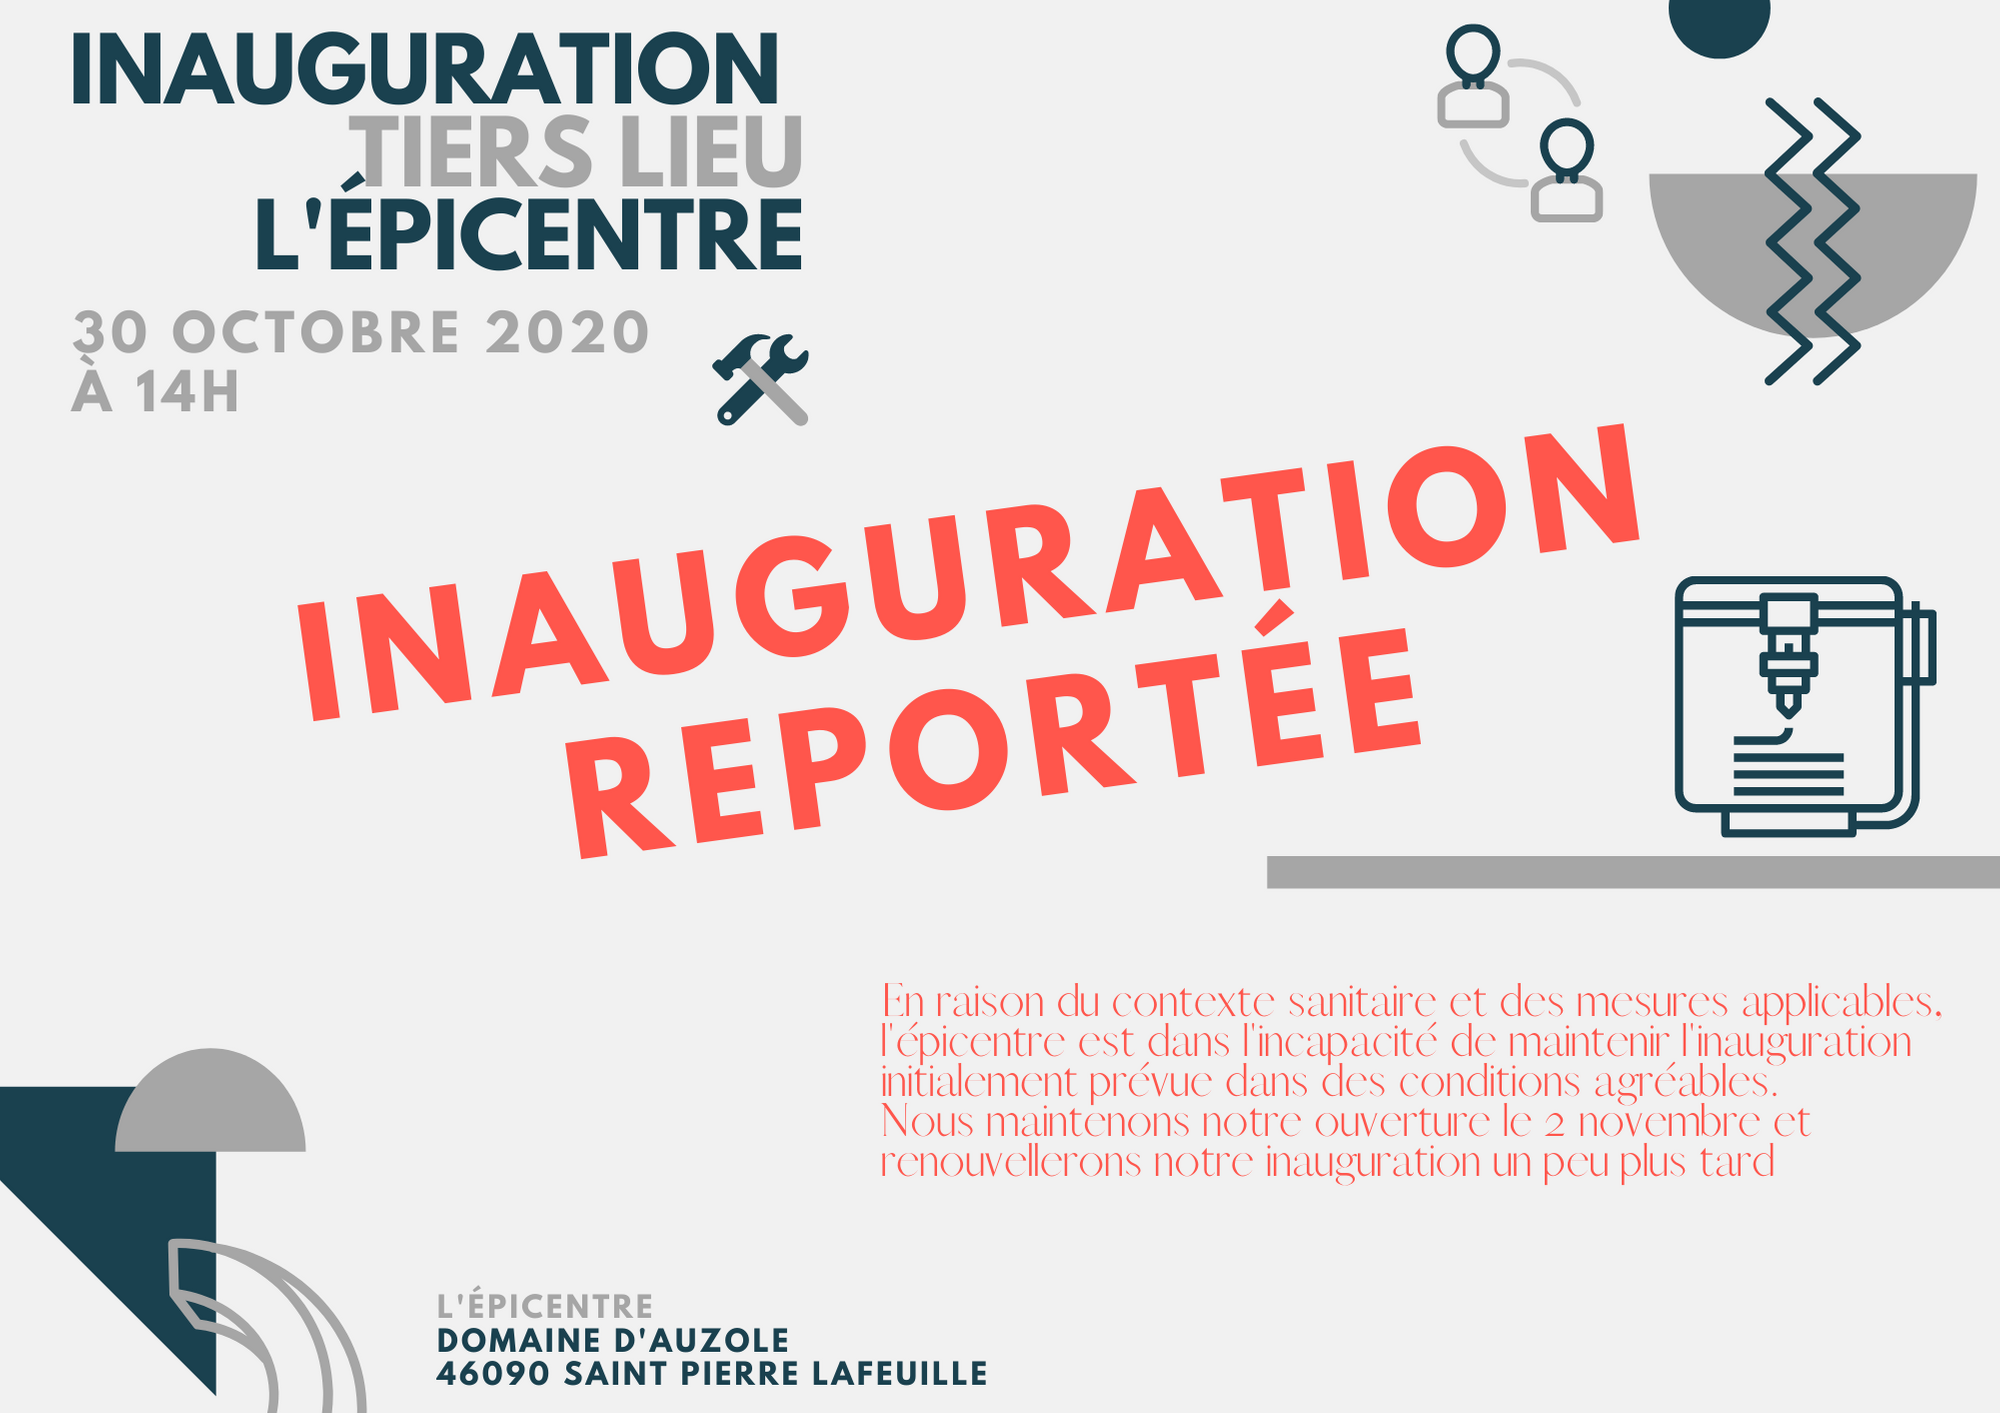 Inauguration_Épicentre_REPORTEE.png